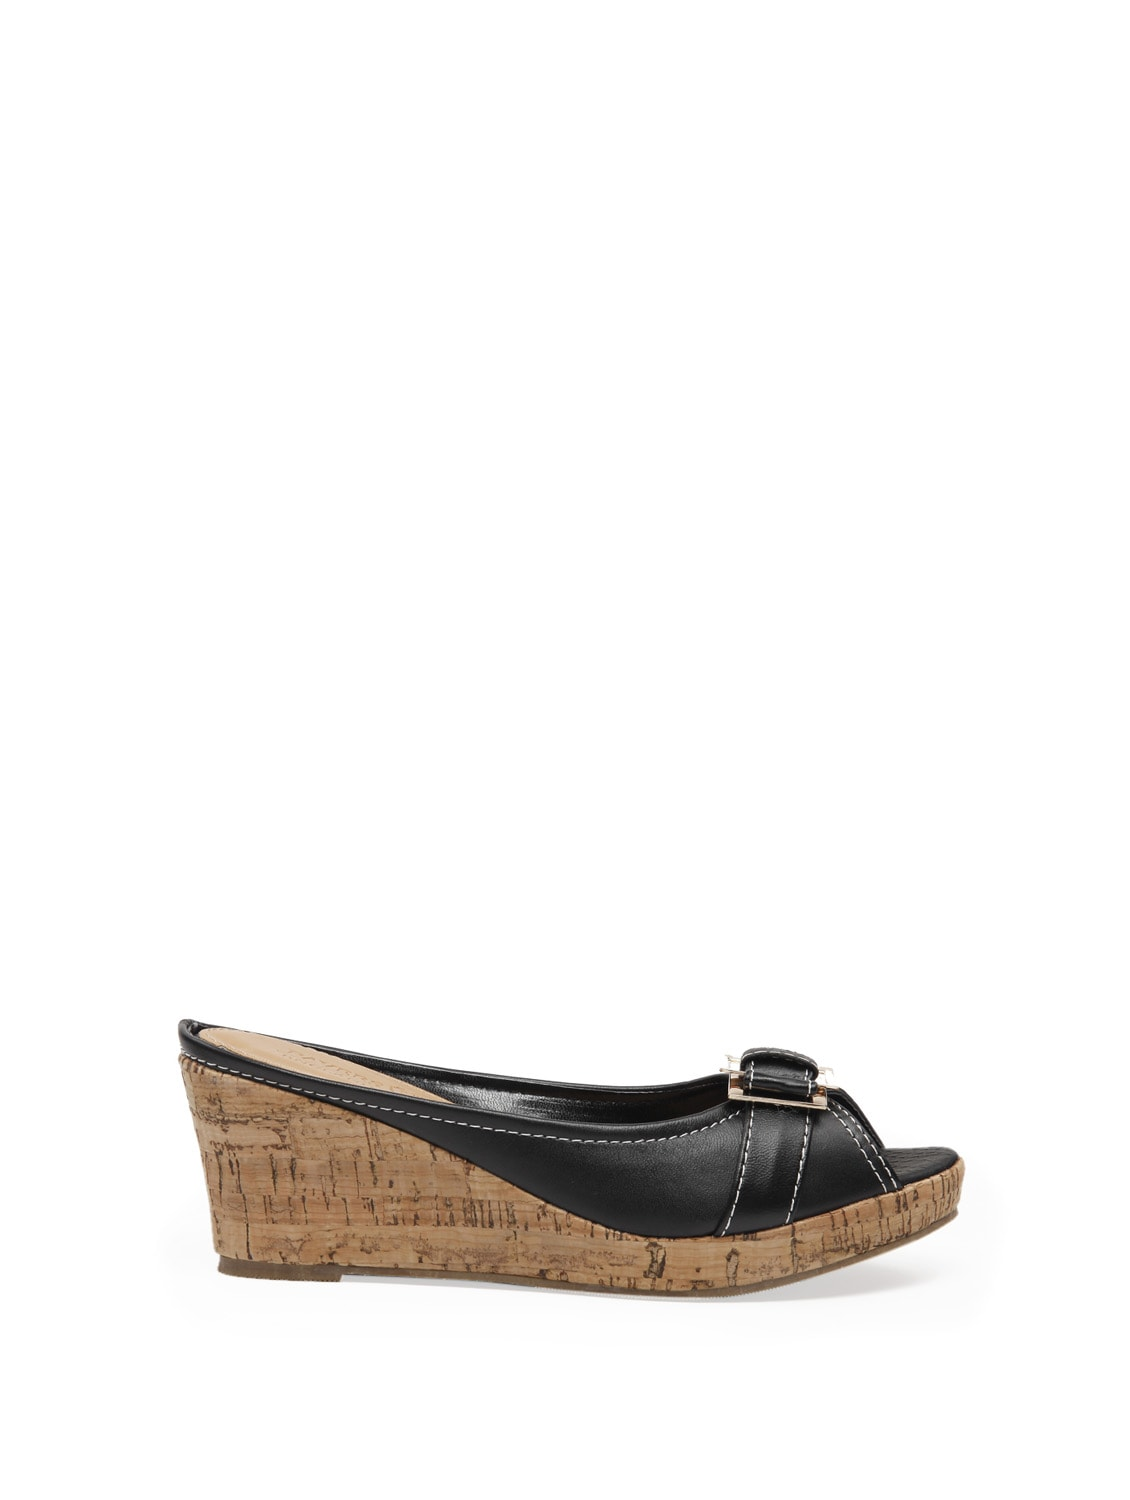 57d96eef9062 Buy Black Wedge Mules for Women from Pavers England for ₹1999 at 0% off